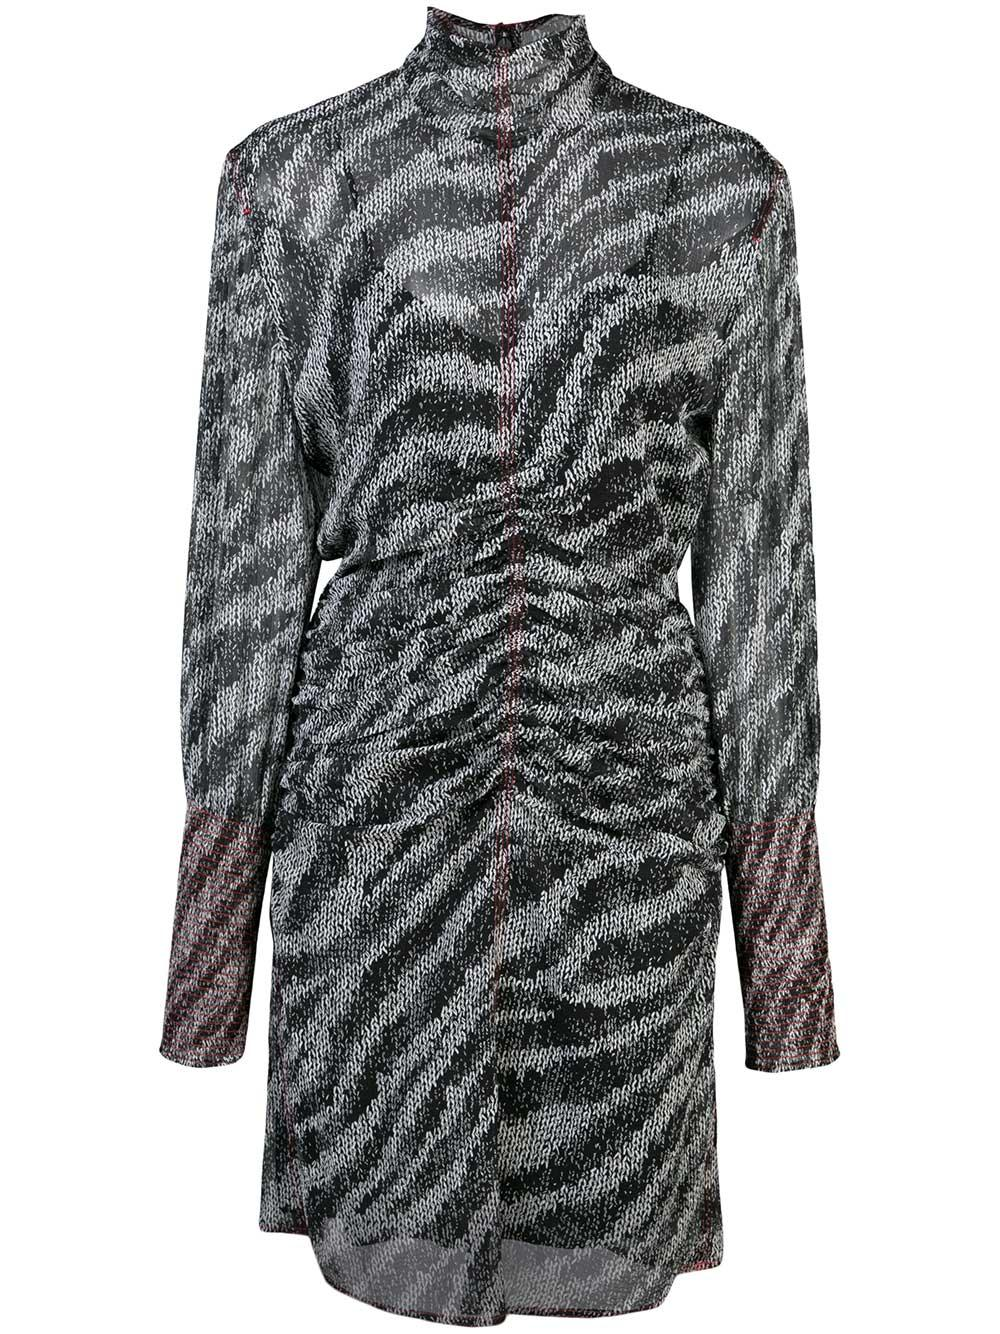 Maris Zebra Mini Dress Item # WAW19H3015ND15